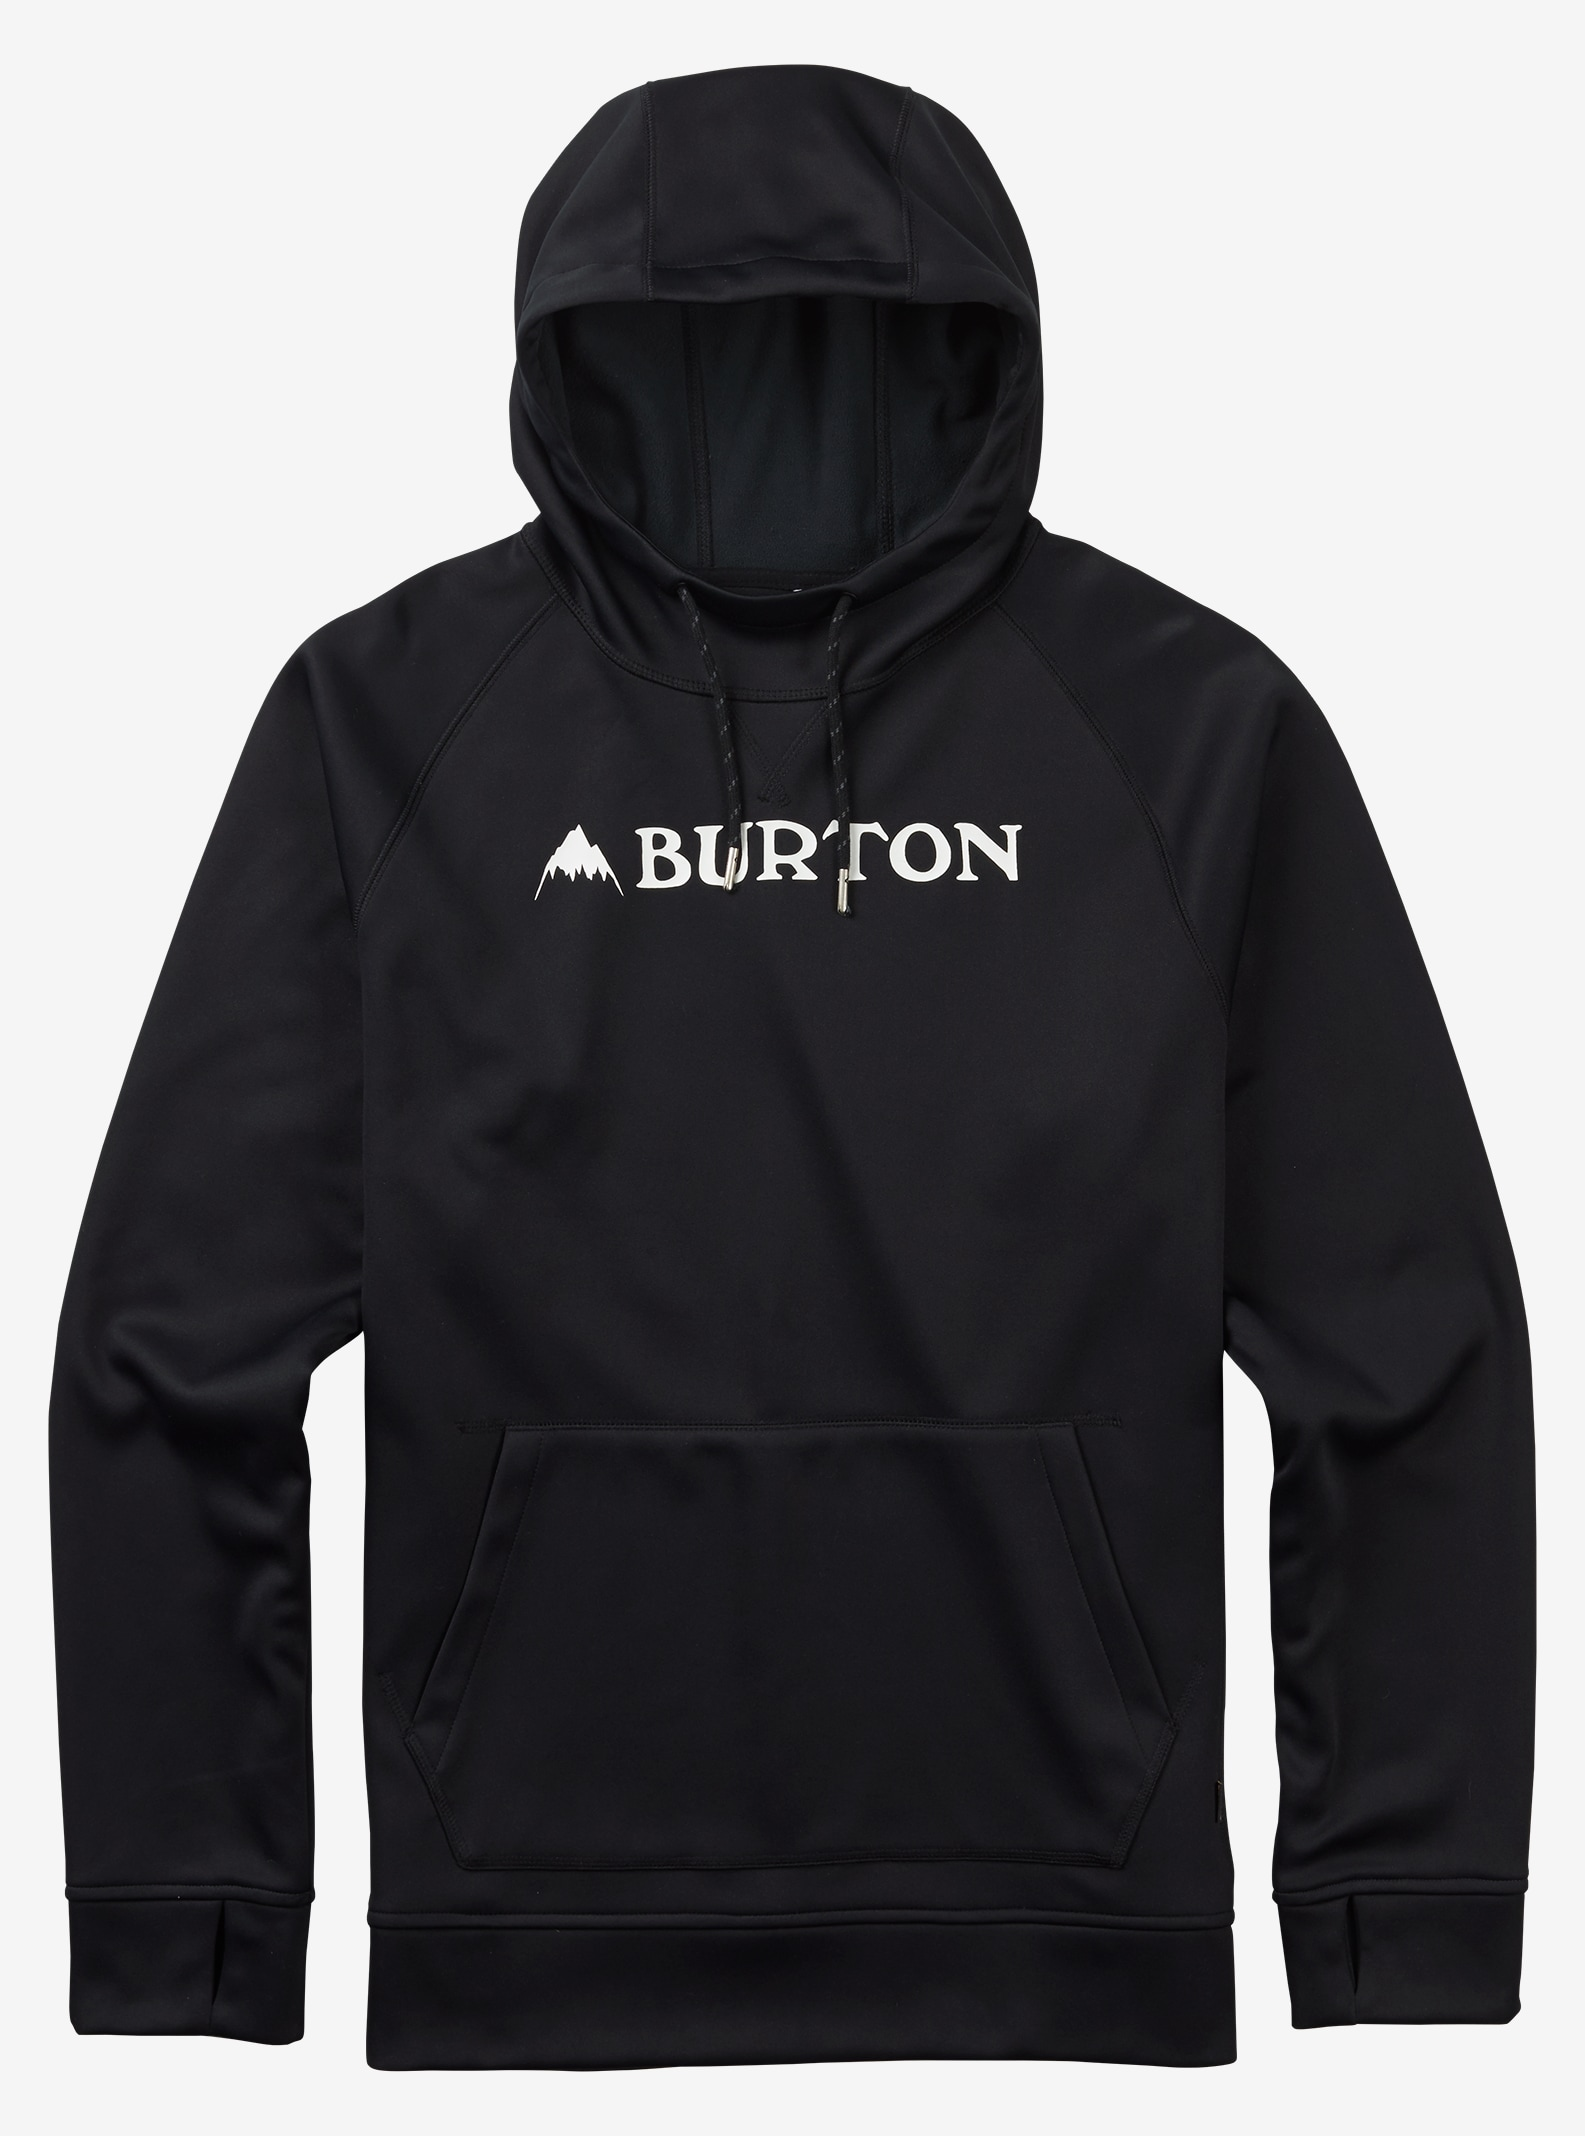 Burton - Chandail à capuchon Crown Bonded affichage en True Black